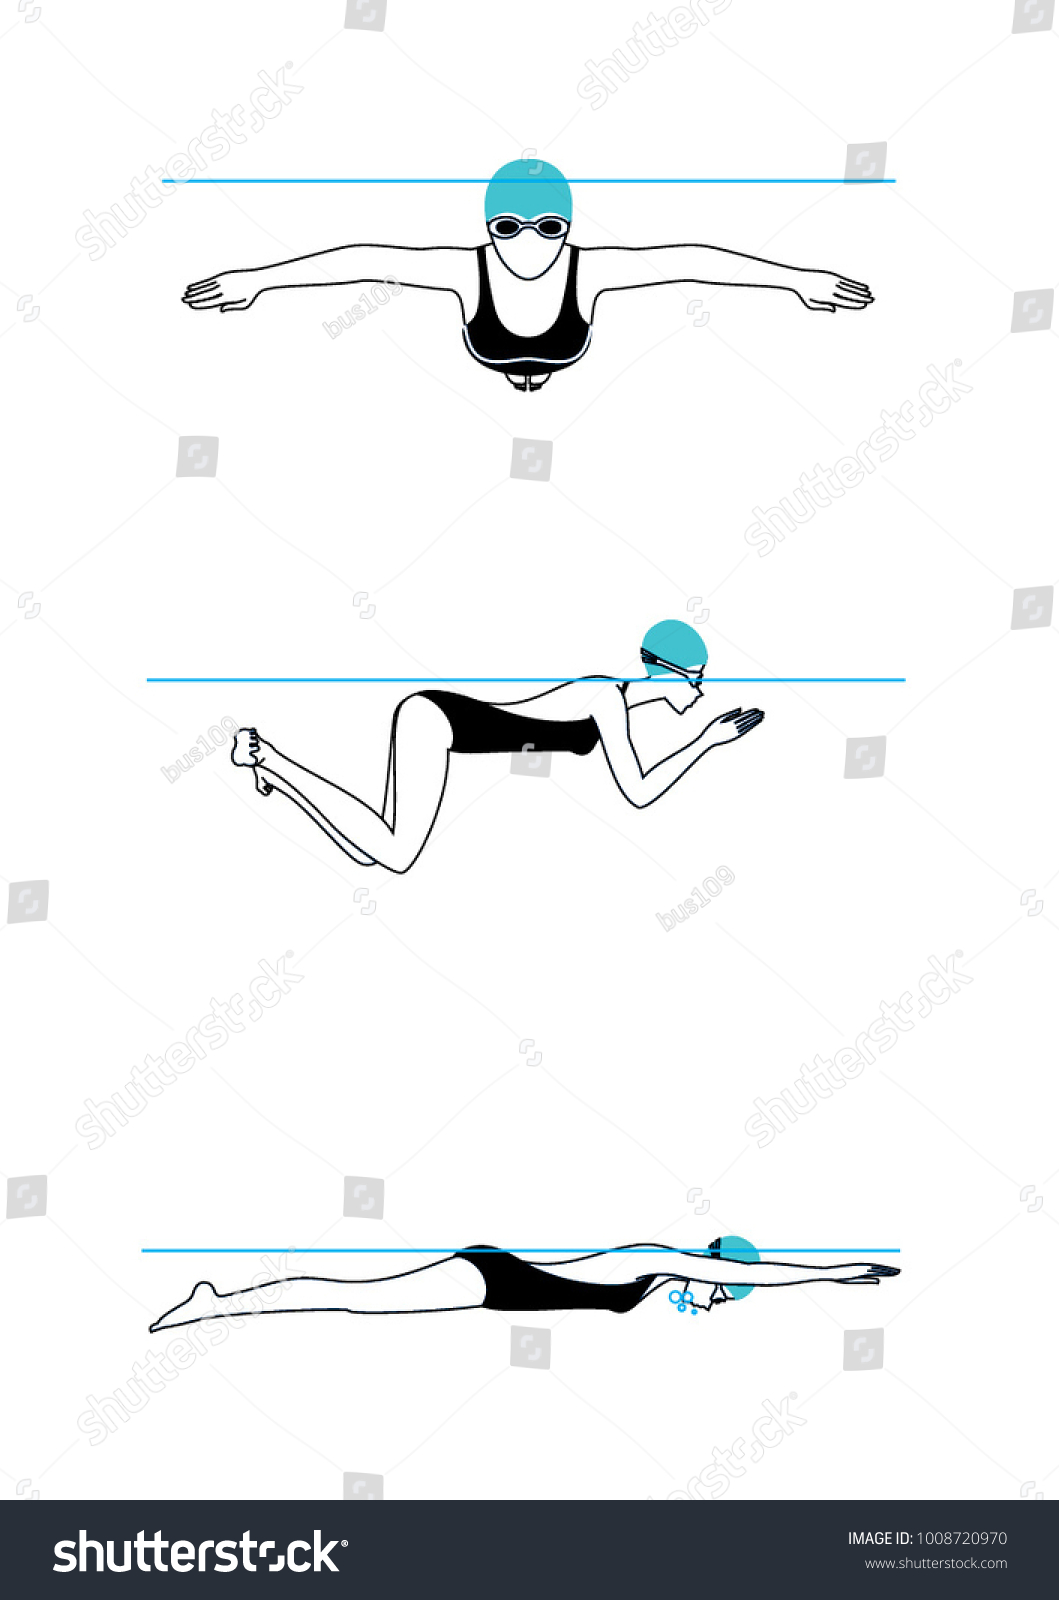 hight resolution of woman swimming brass technique step by step illustration set